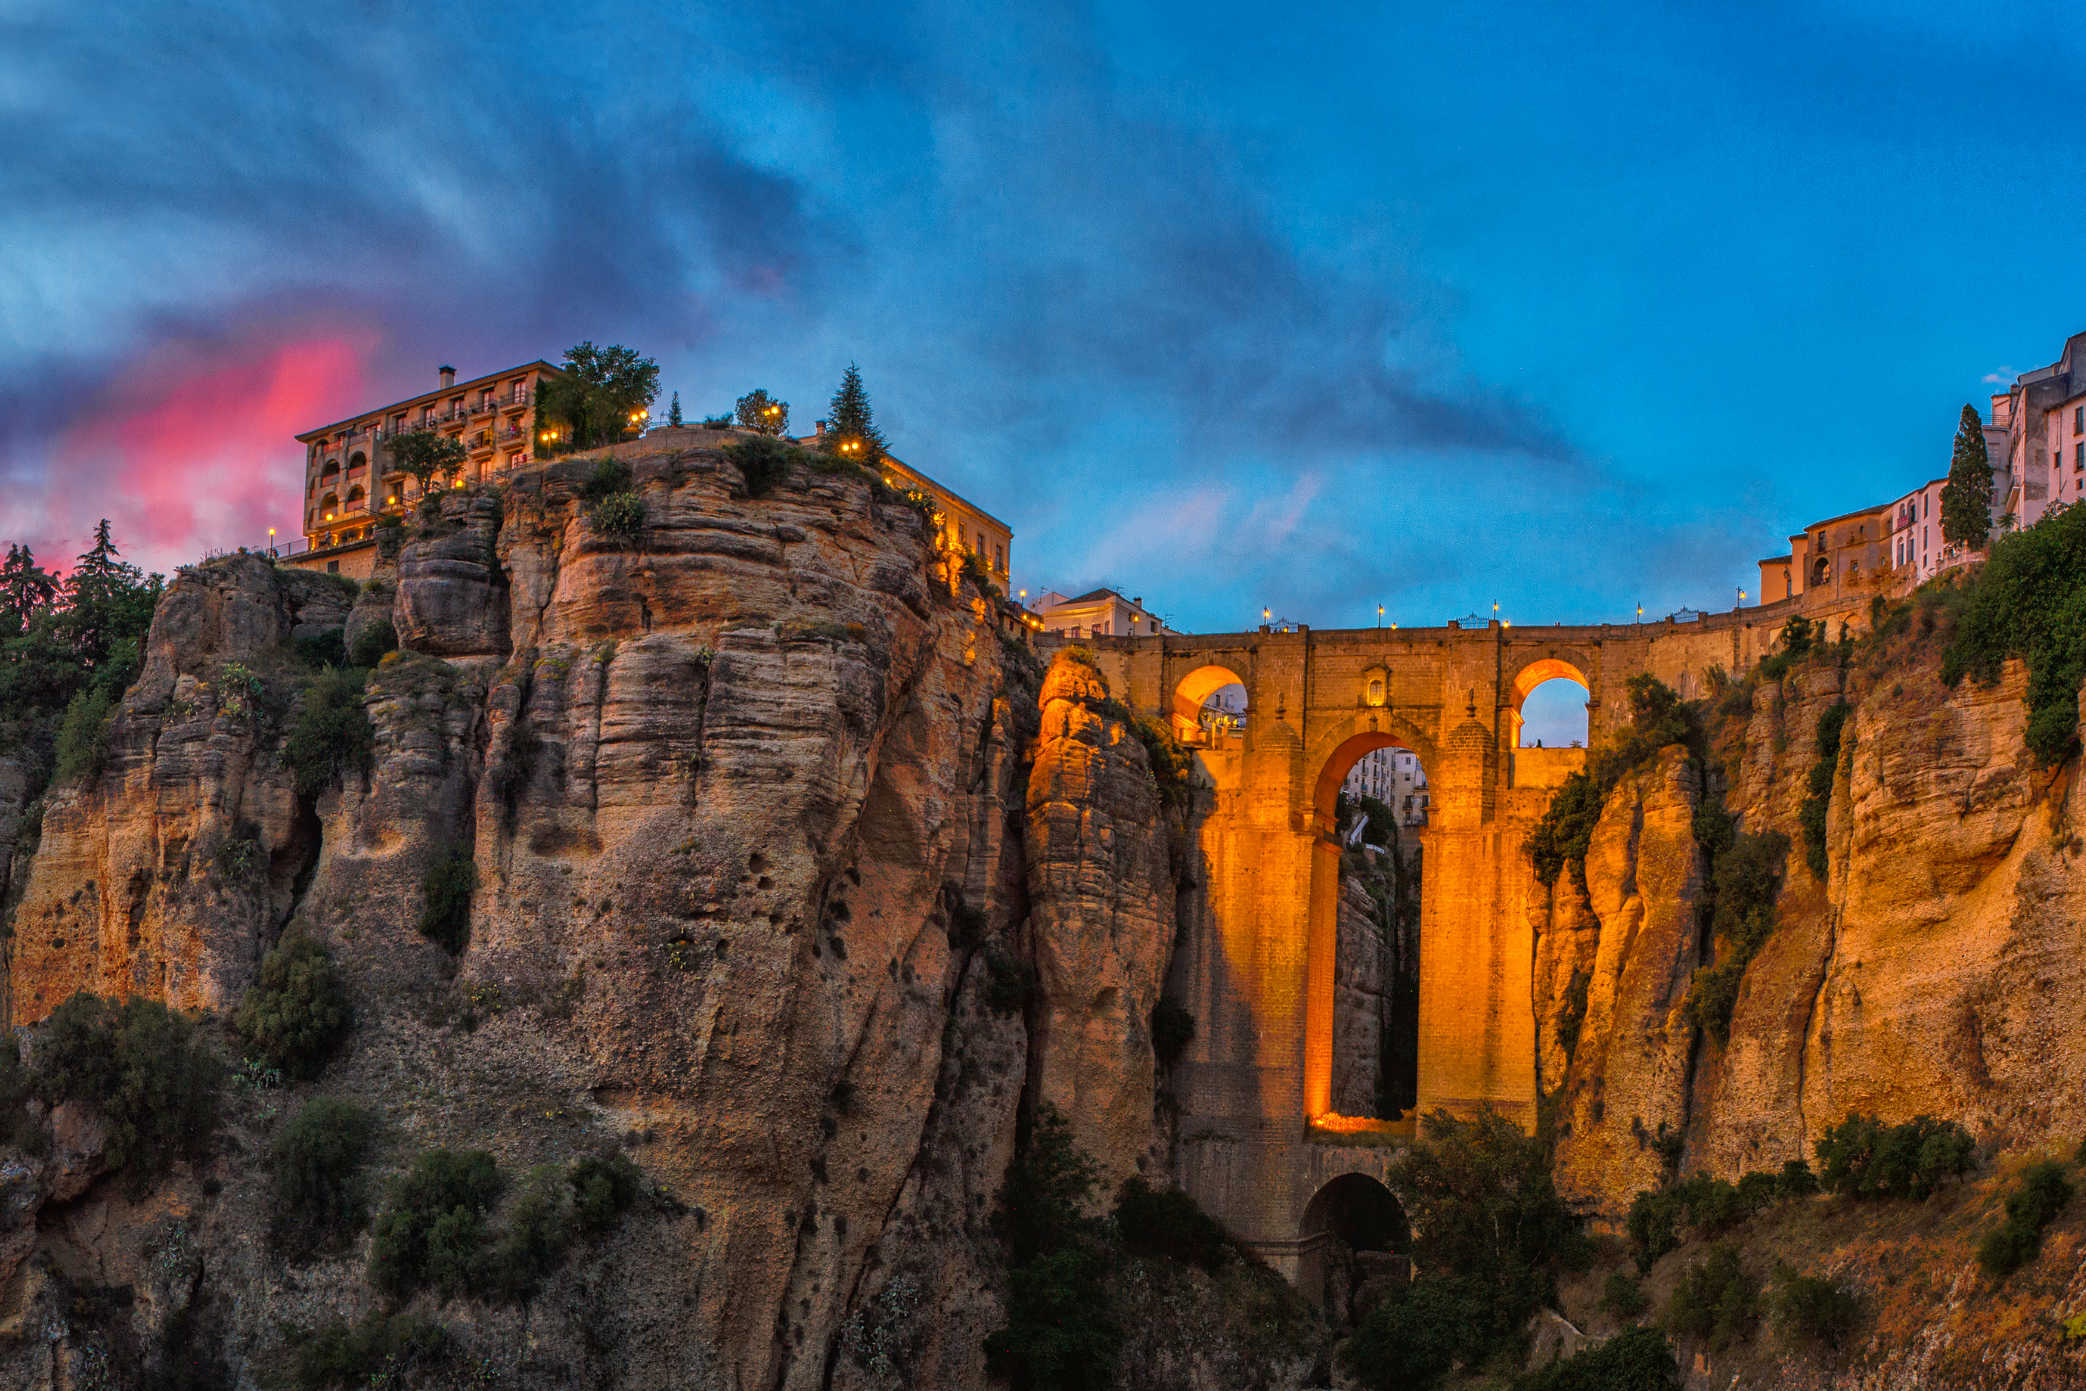 20 Images of Andalusia